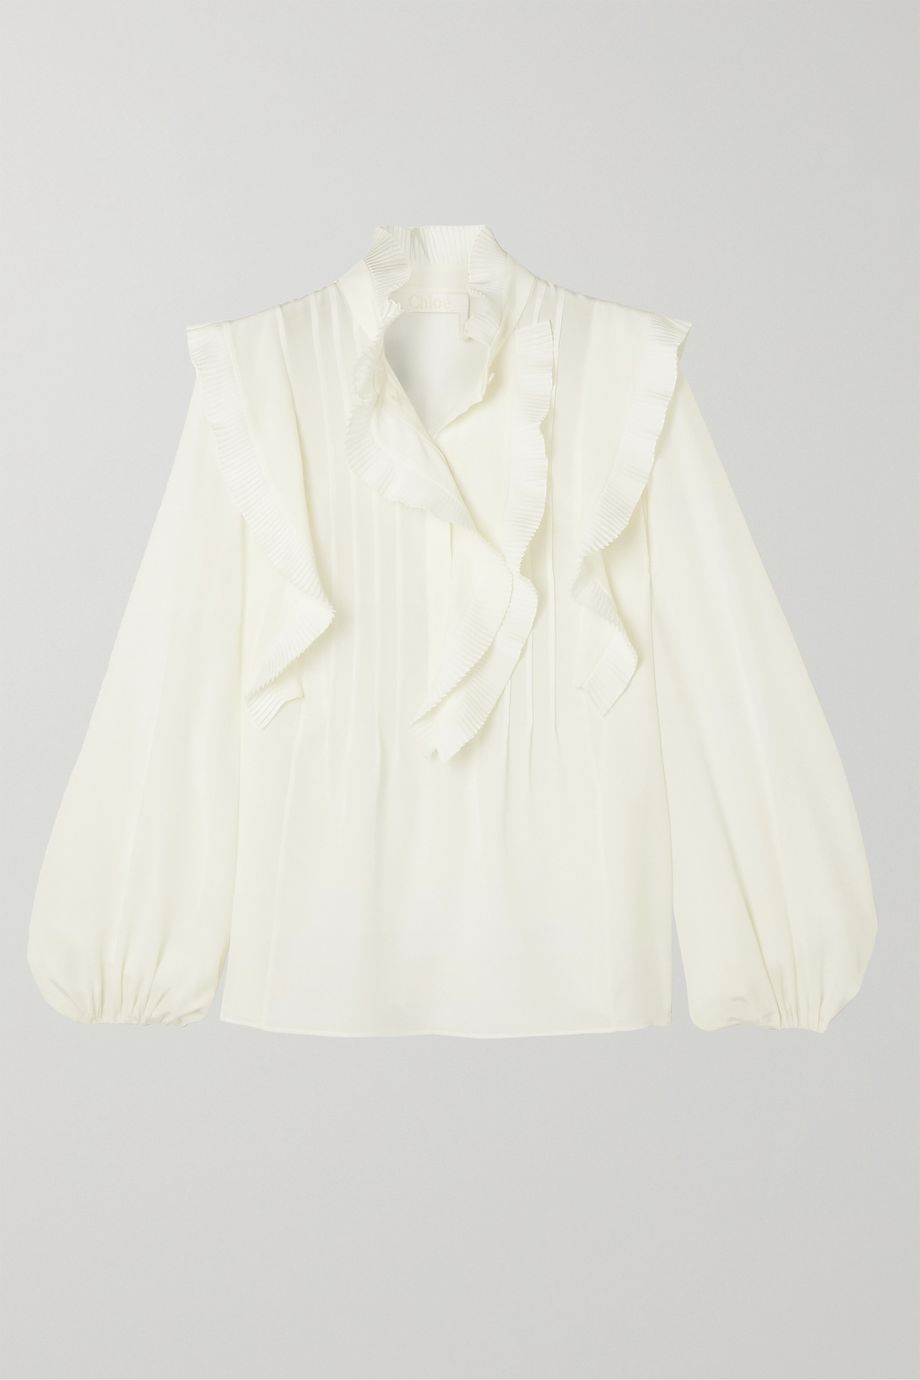 Chloé Ruffled pintucked silk crepe de chine blouse